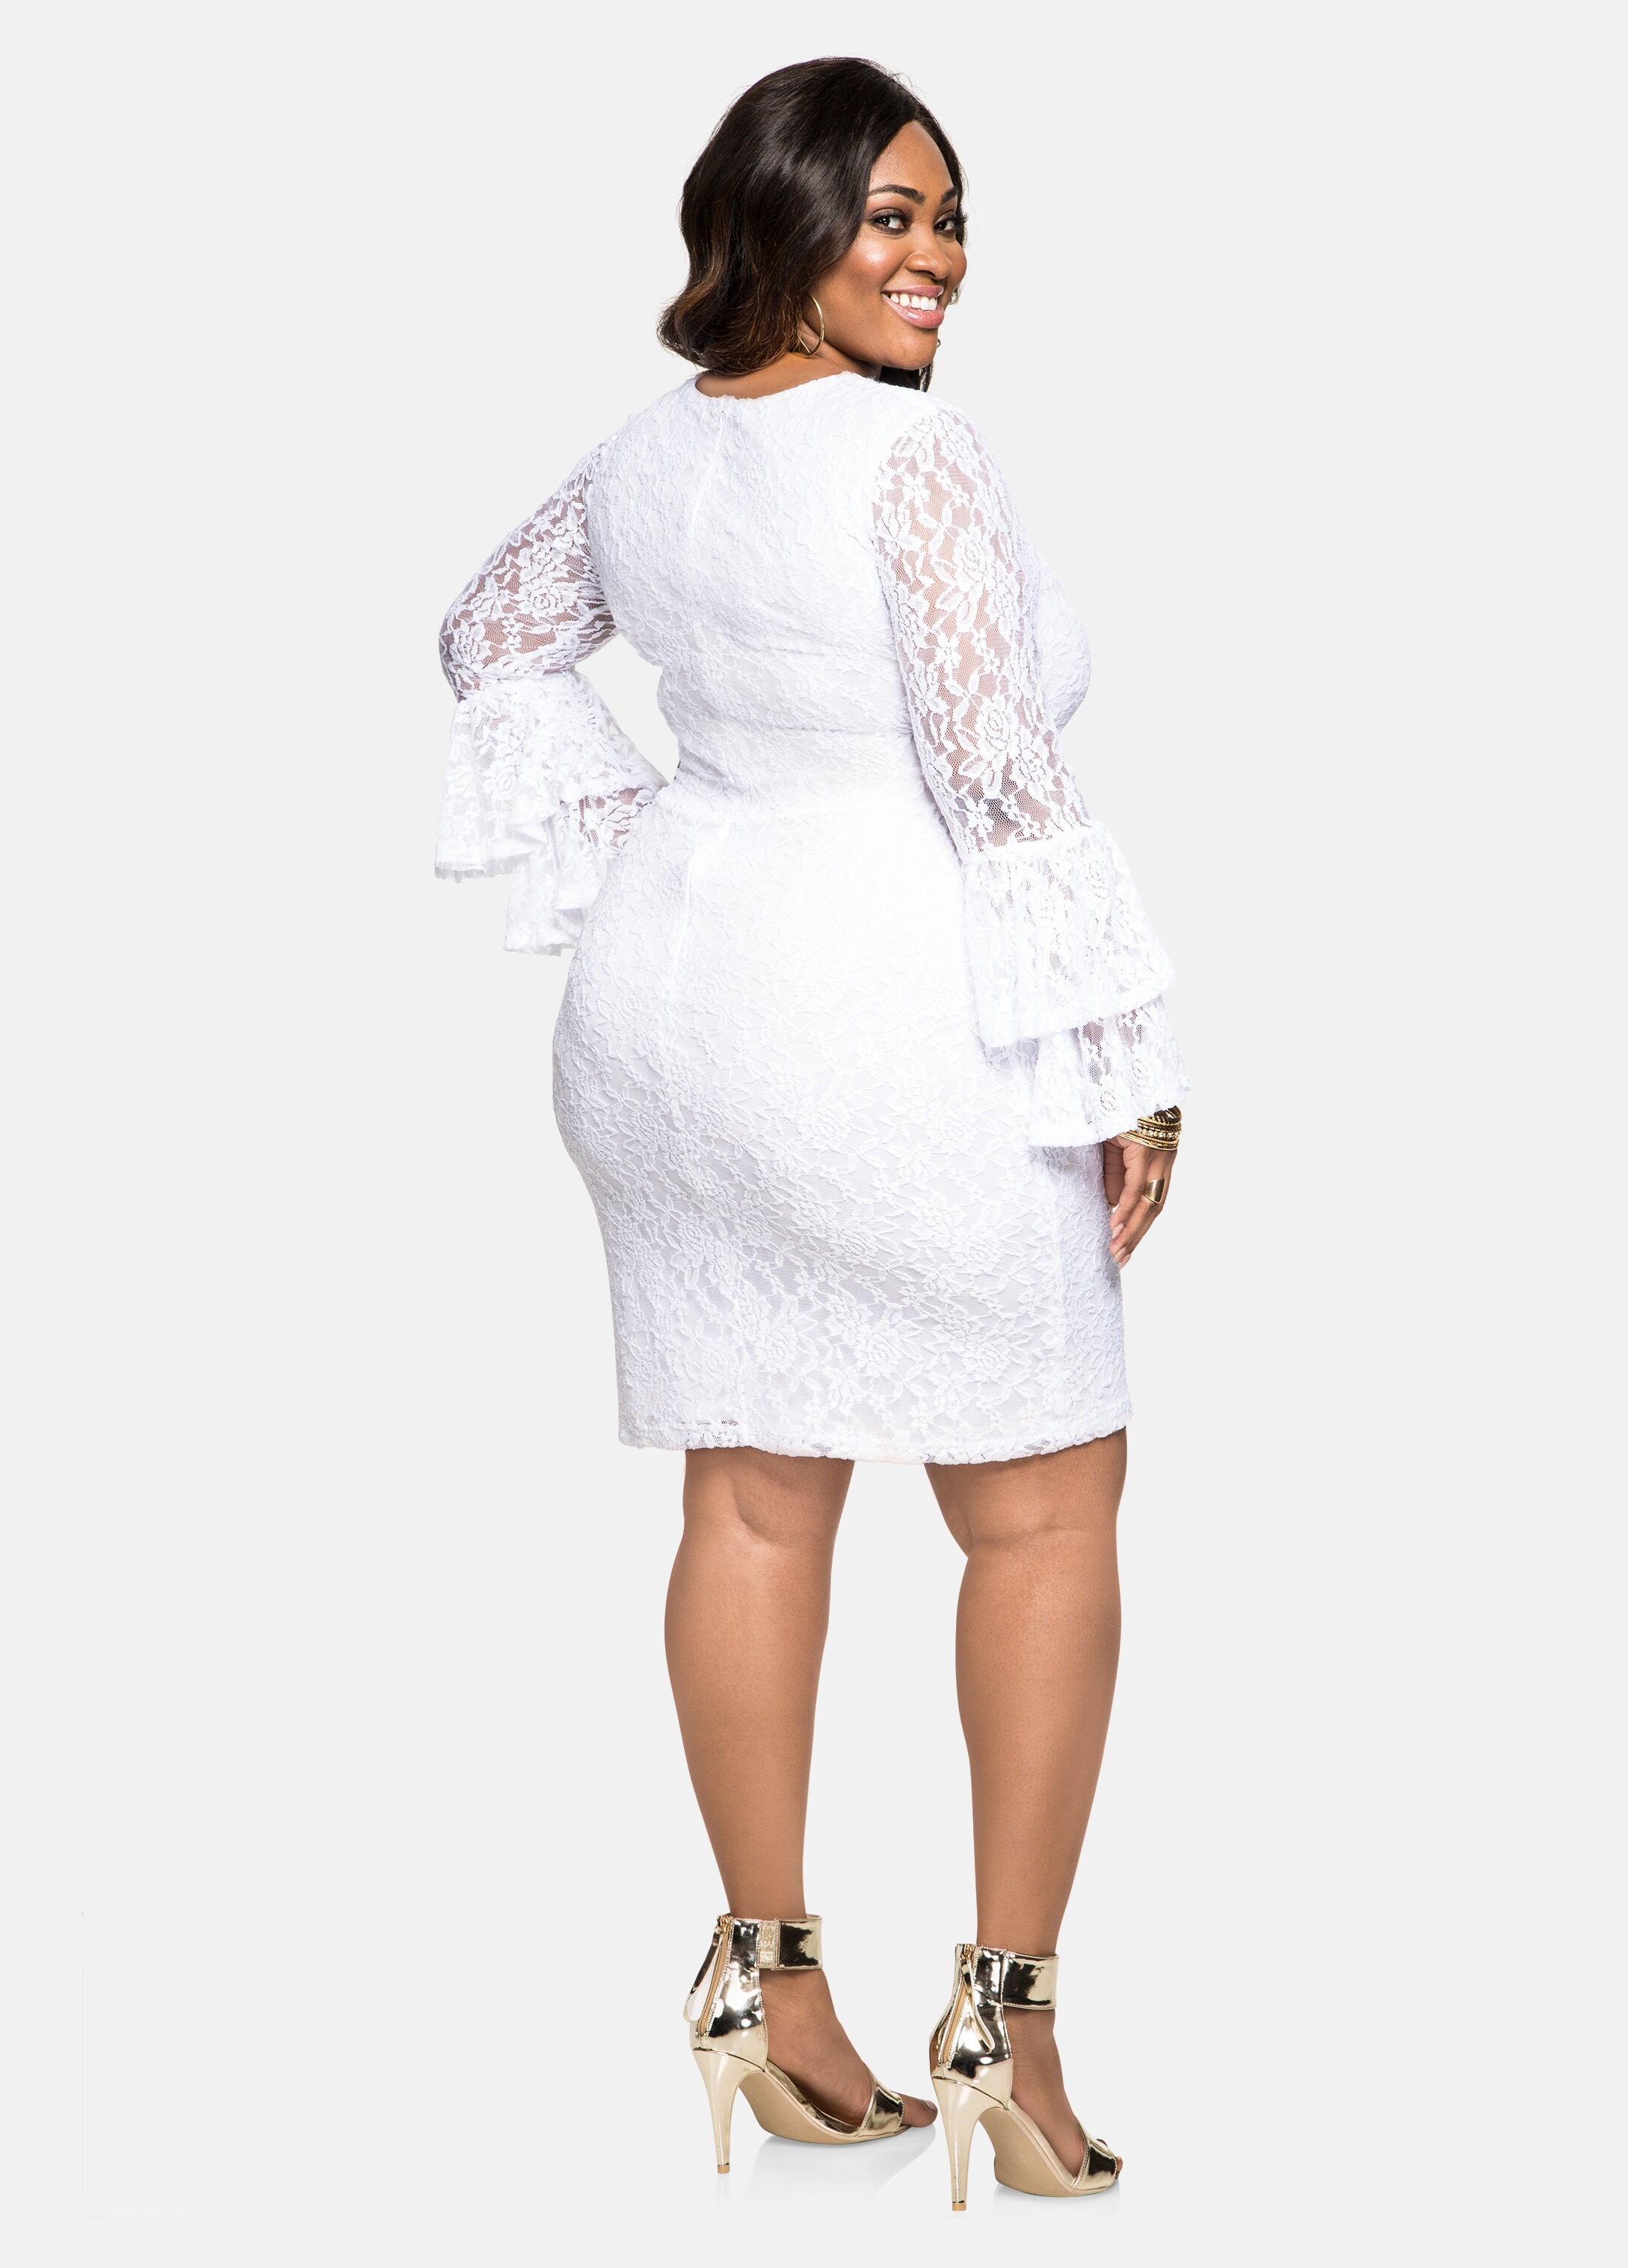 Plus Size Dresses - Tiered Bell Sleeve Lace Overlay Dress